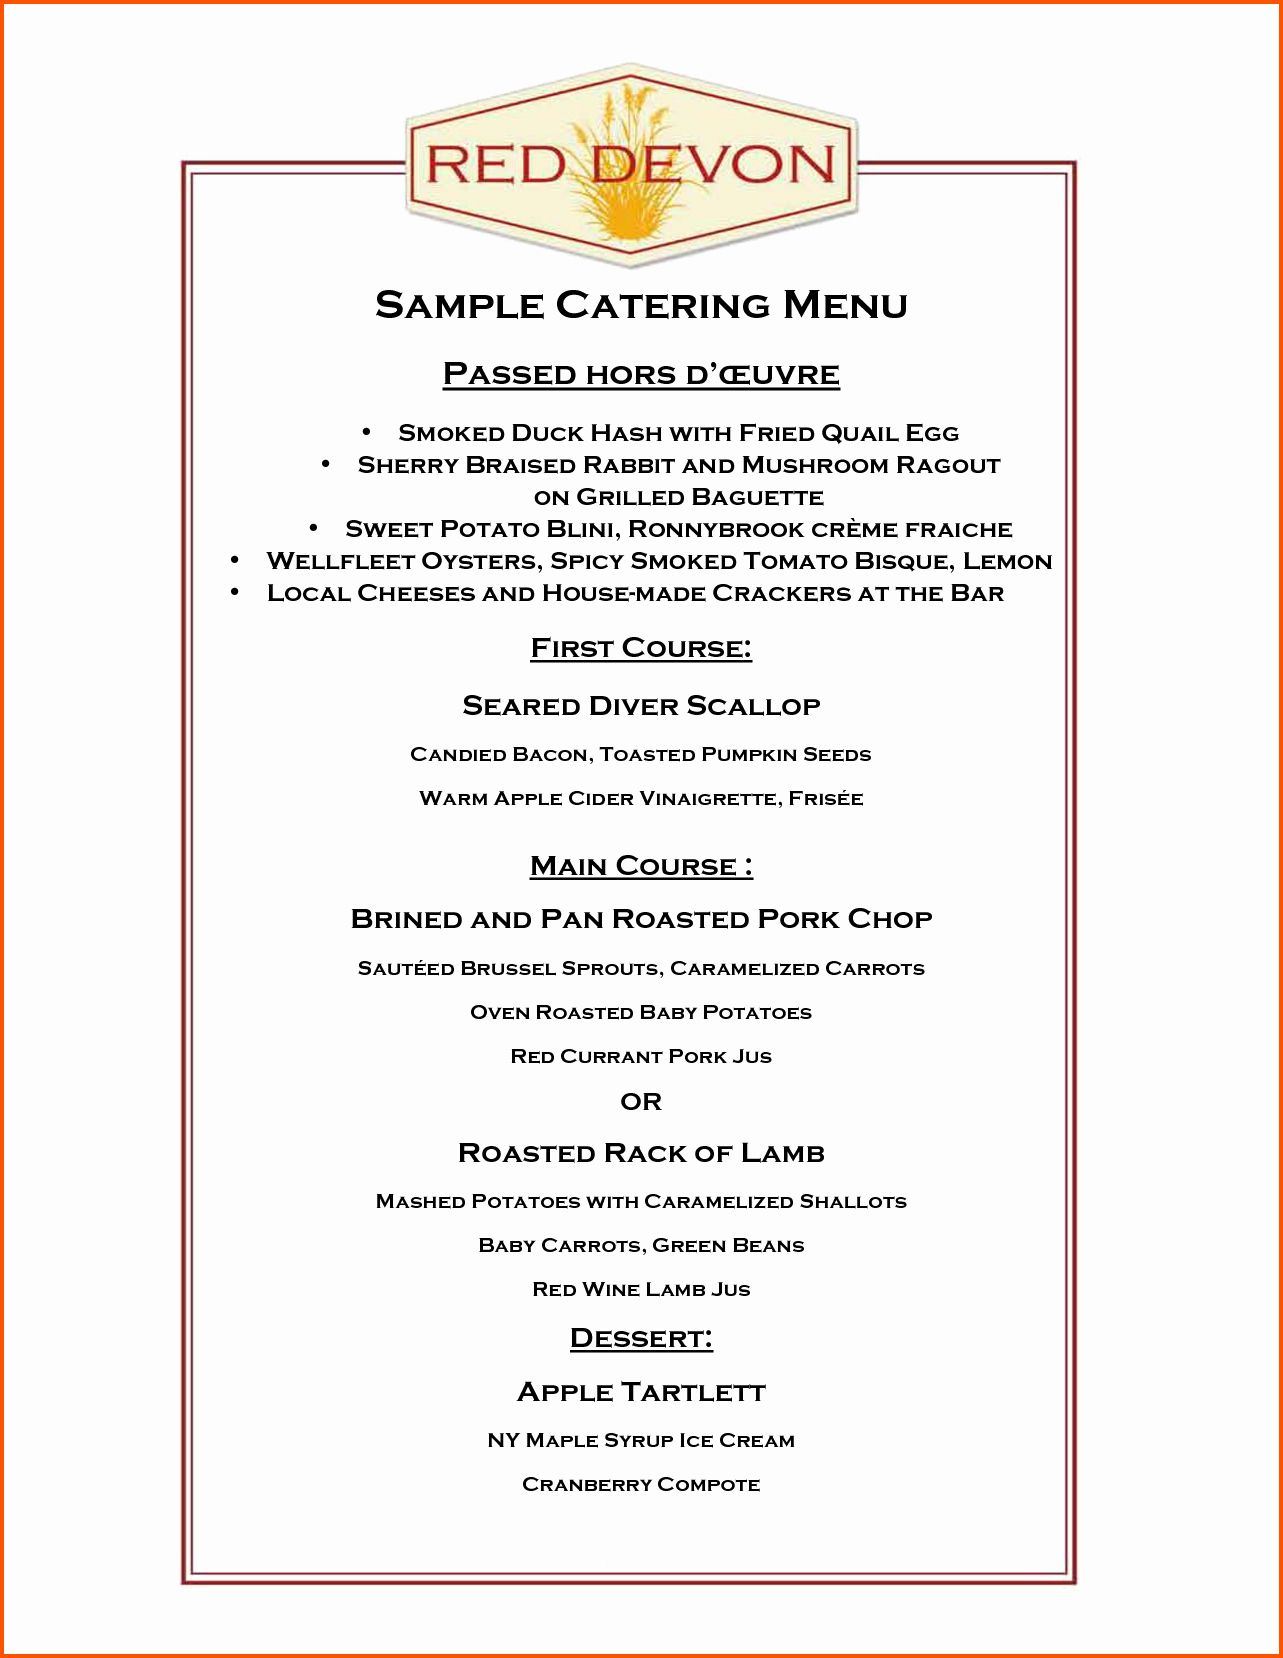 Catering Menu Template Free Lovely Catering Menu Template Free Portablegasgrillweber Menu Template Free Menu Design Template Menu Template Free catering menu templates download